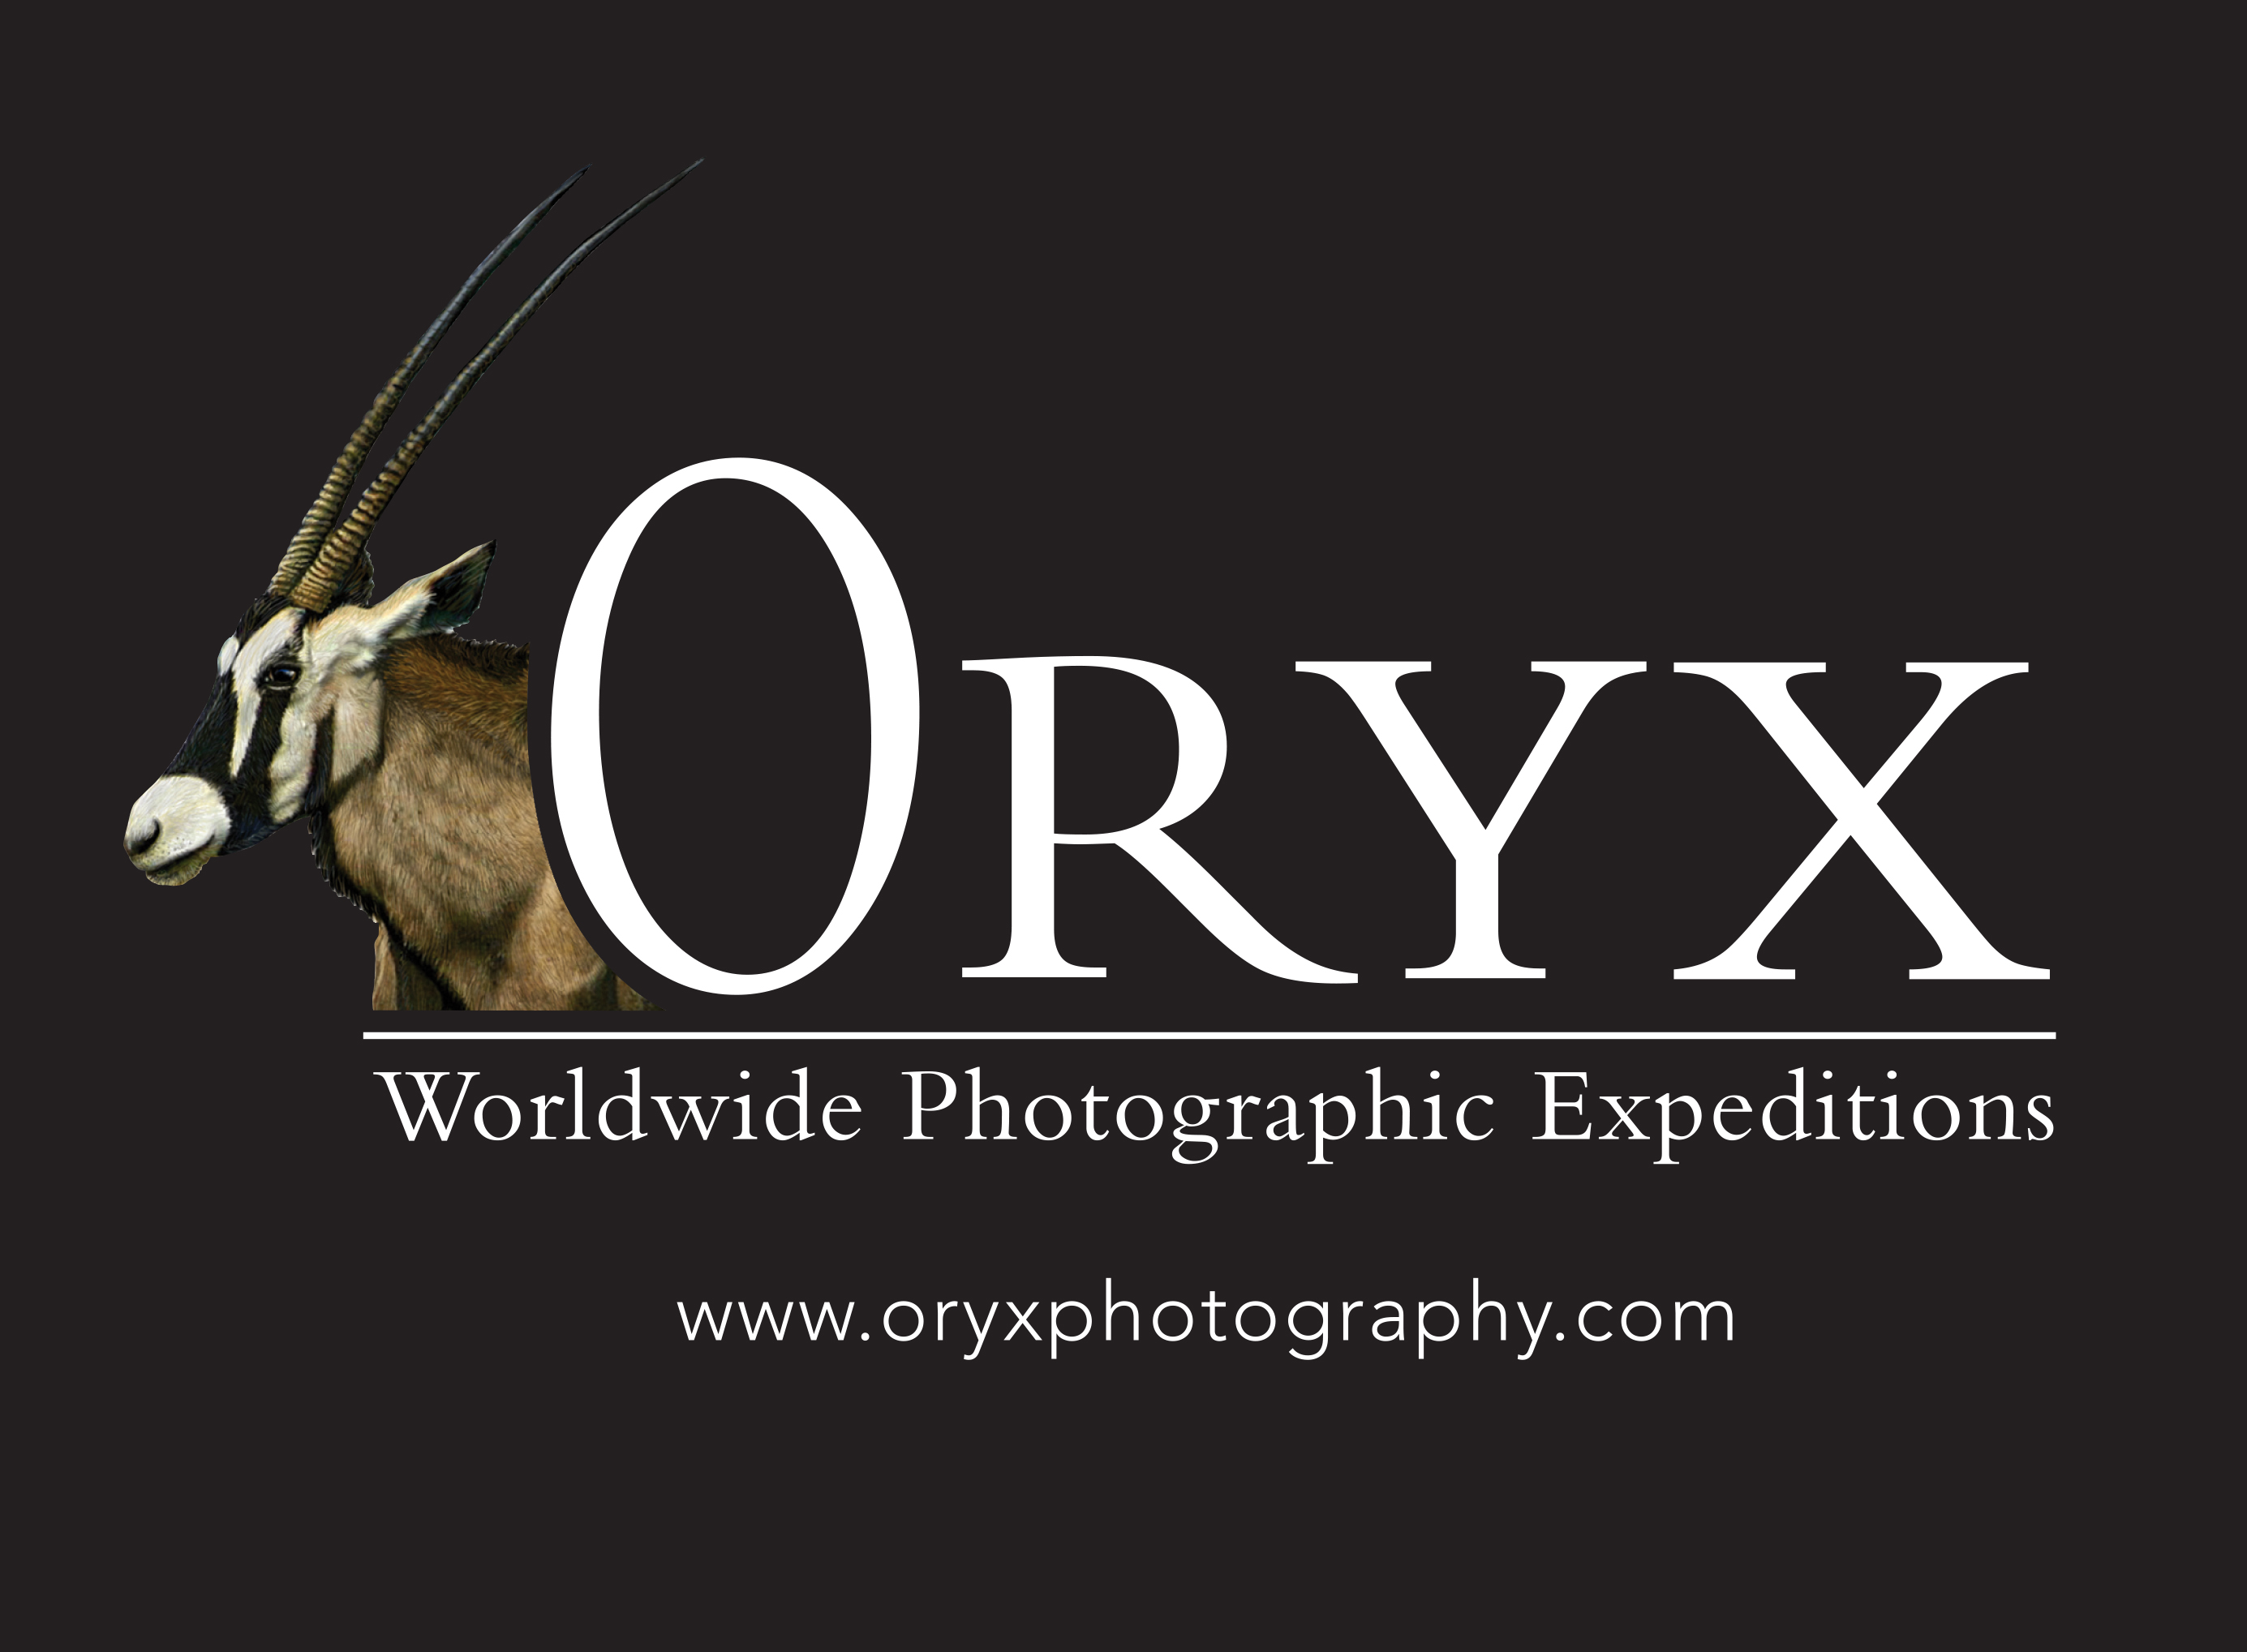 ORYX- Worldwide Photographic Expeditions